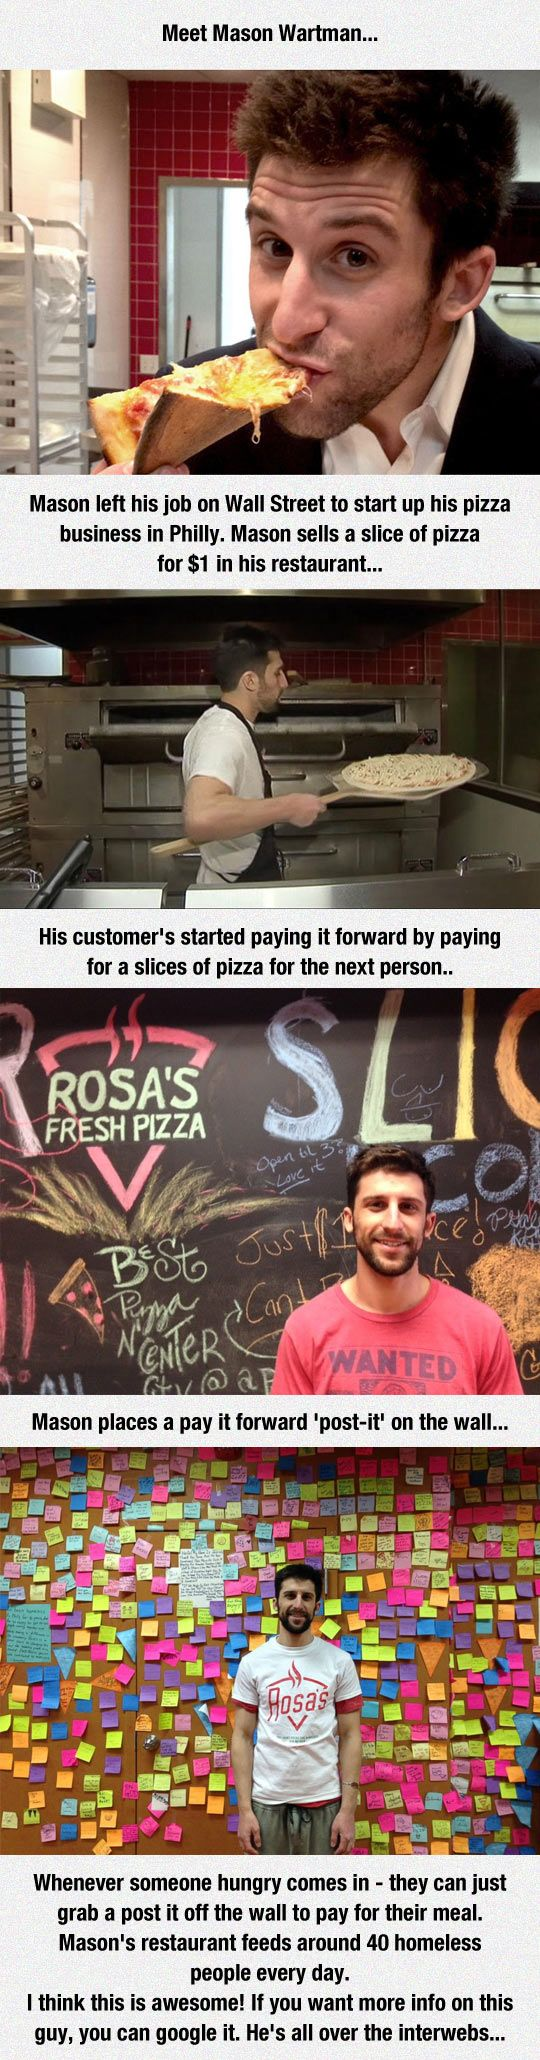 If I Ever Visit This Place, I Will Buy Everyone Pizza